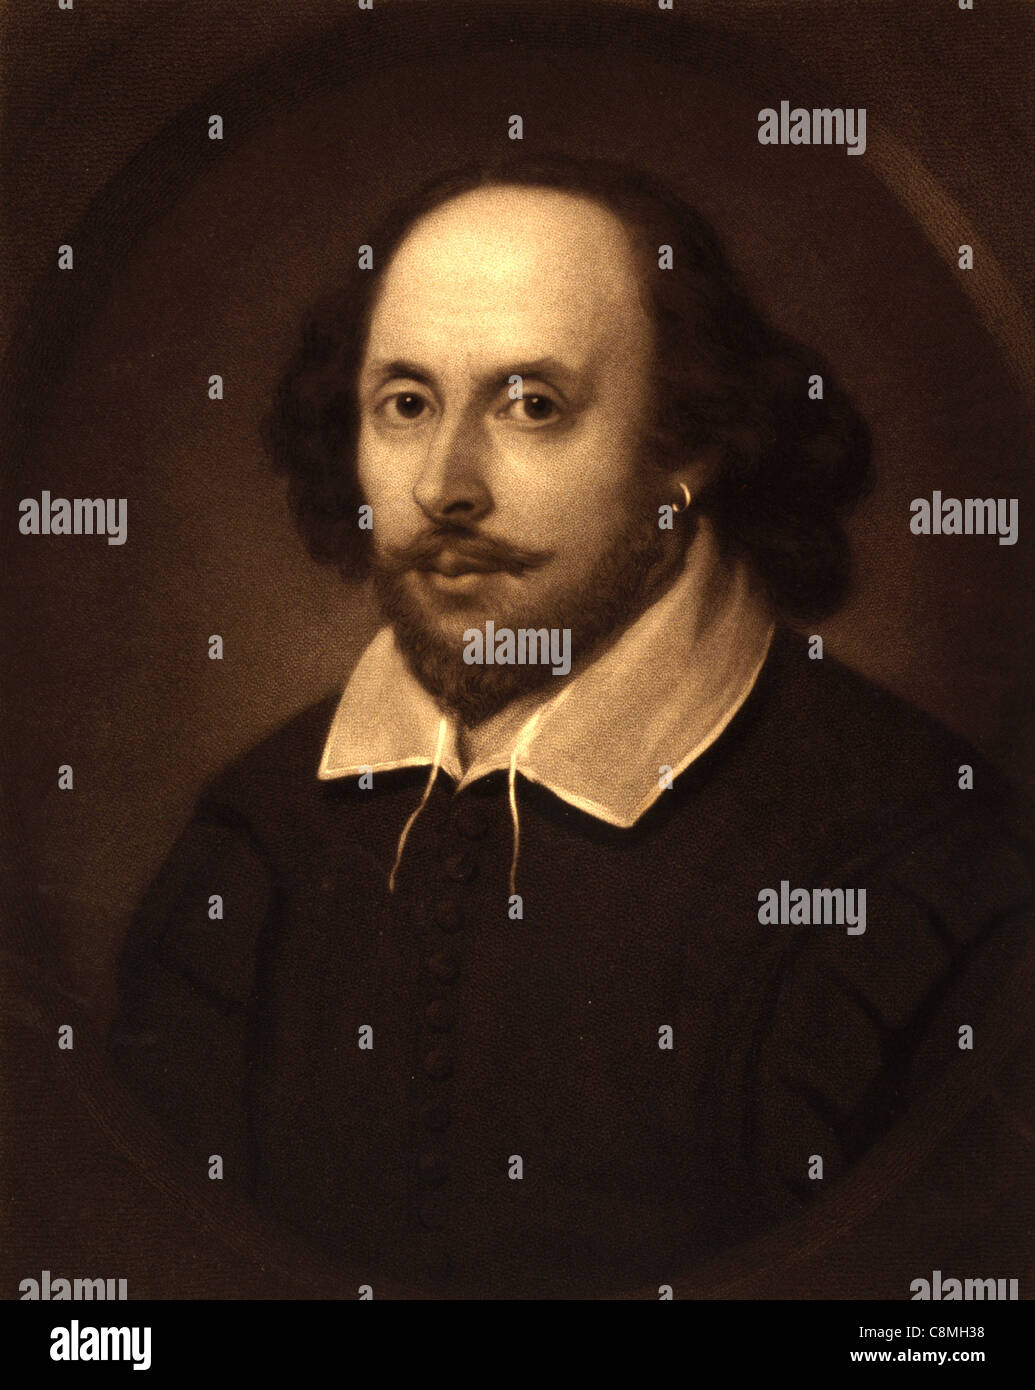 William Shakespeare, poeta y dramaturgo inglés. Retrato de William Shakespeare. Foto de stock